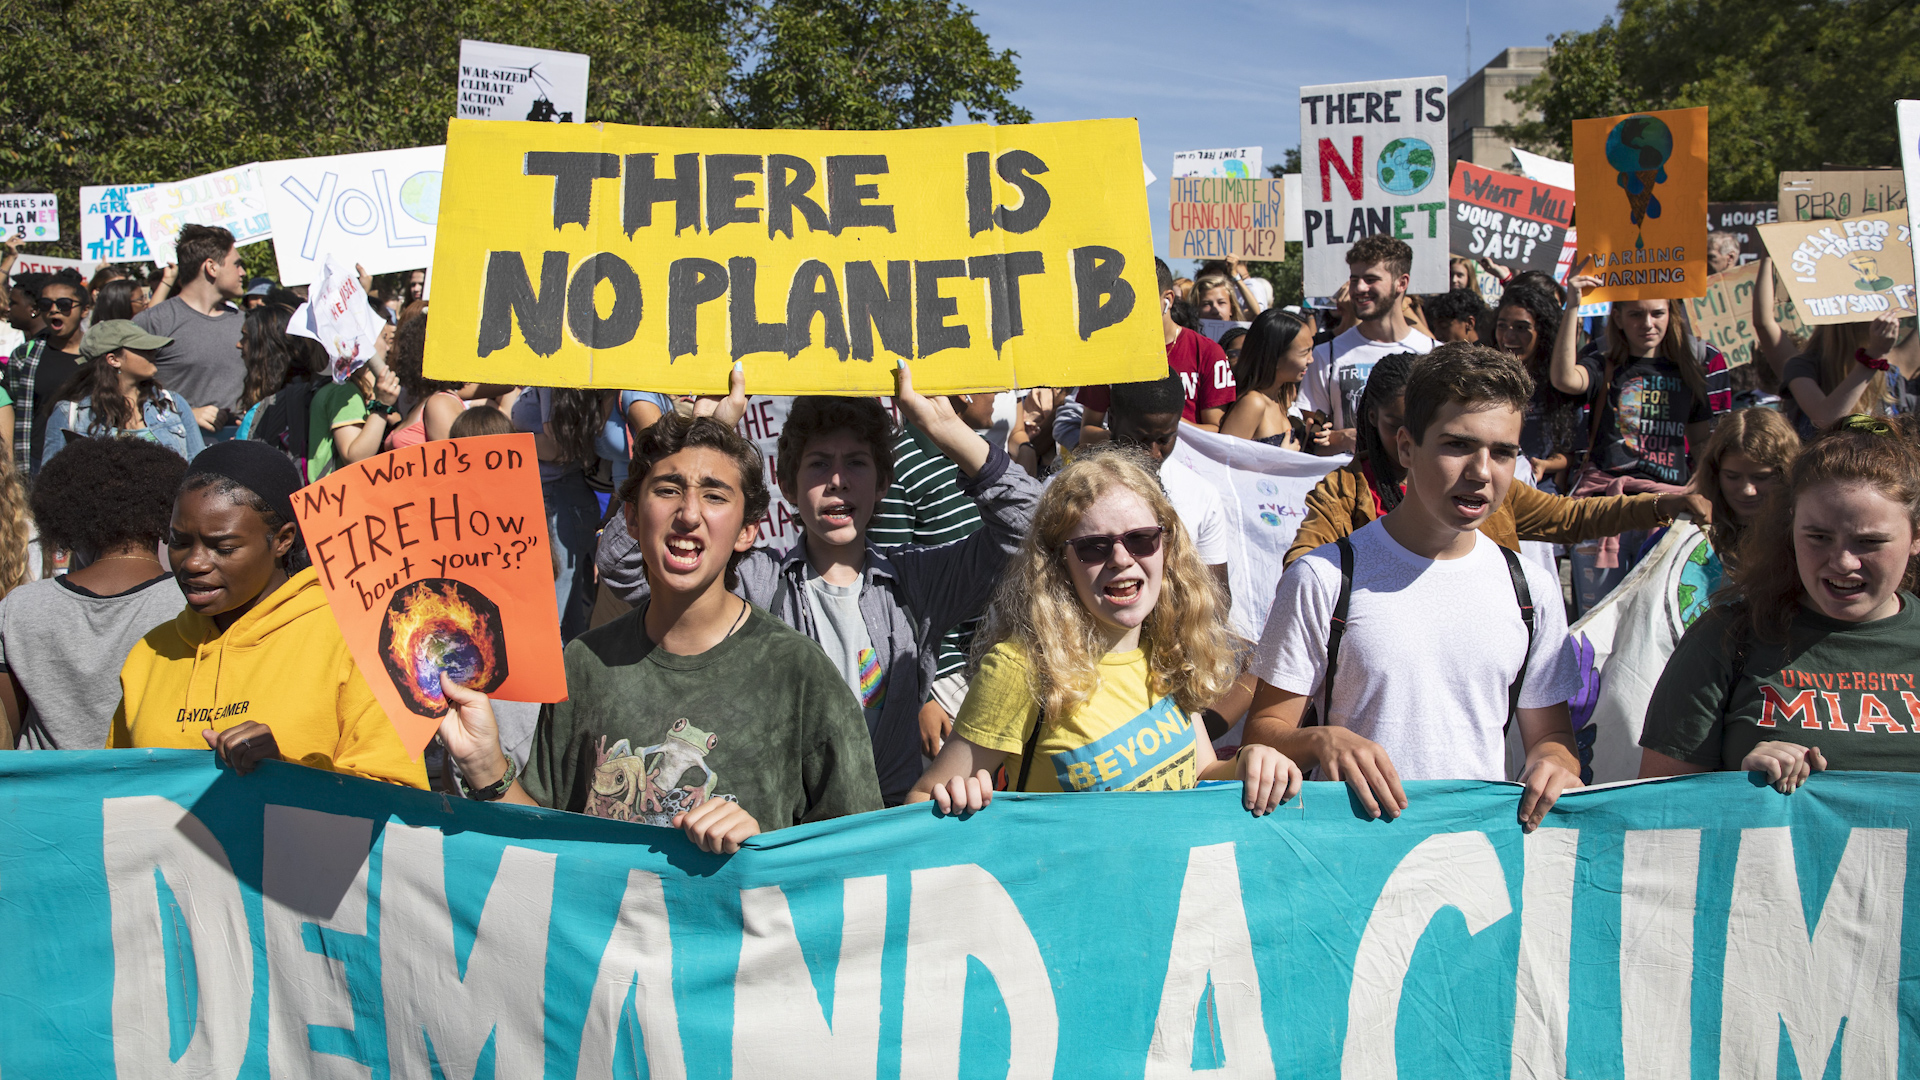 Climate change strike: Walkout, protests for climate change on September 20 - The Washington Post